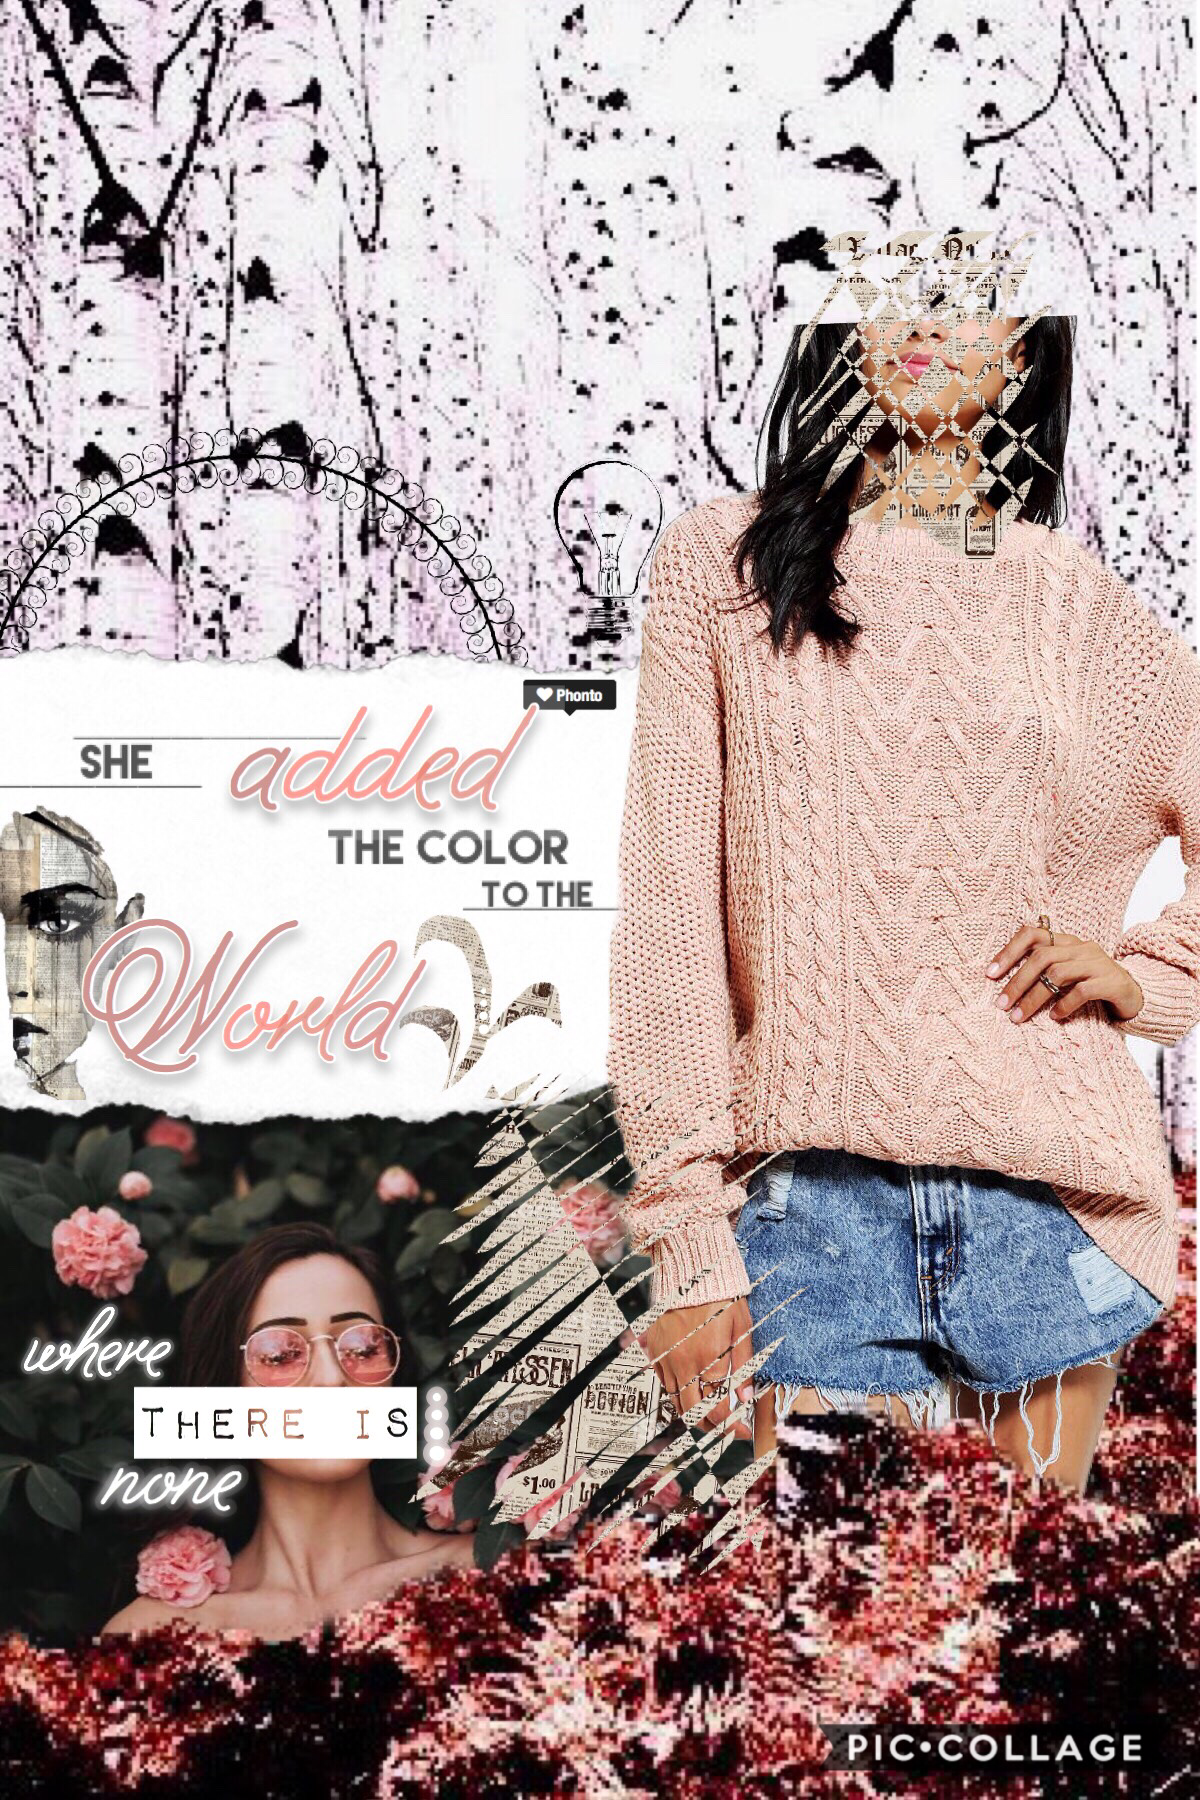 🌷HERE YOU GO!!!🌷  made using pc & phonto  i hope you guys are all doing great! feel free to chat even though i havent been posting a lot recently i am active and always love to talk!  PERSONAL UPDATE: rn i am moving into a new house and it is gigantic! an